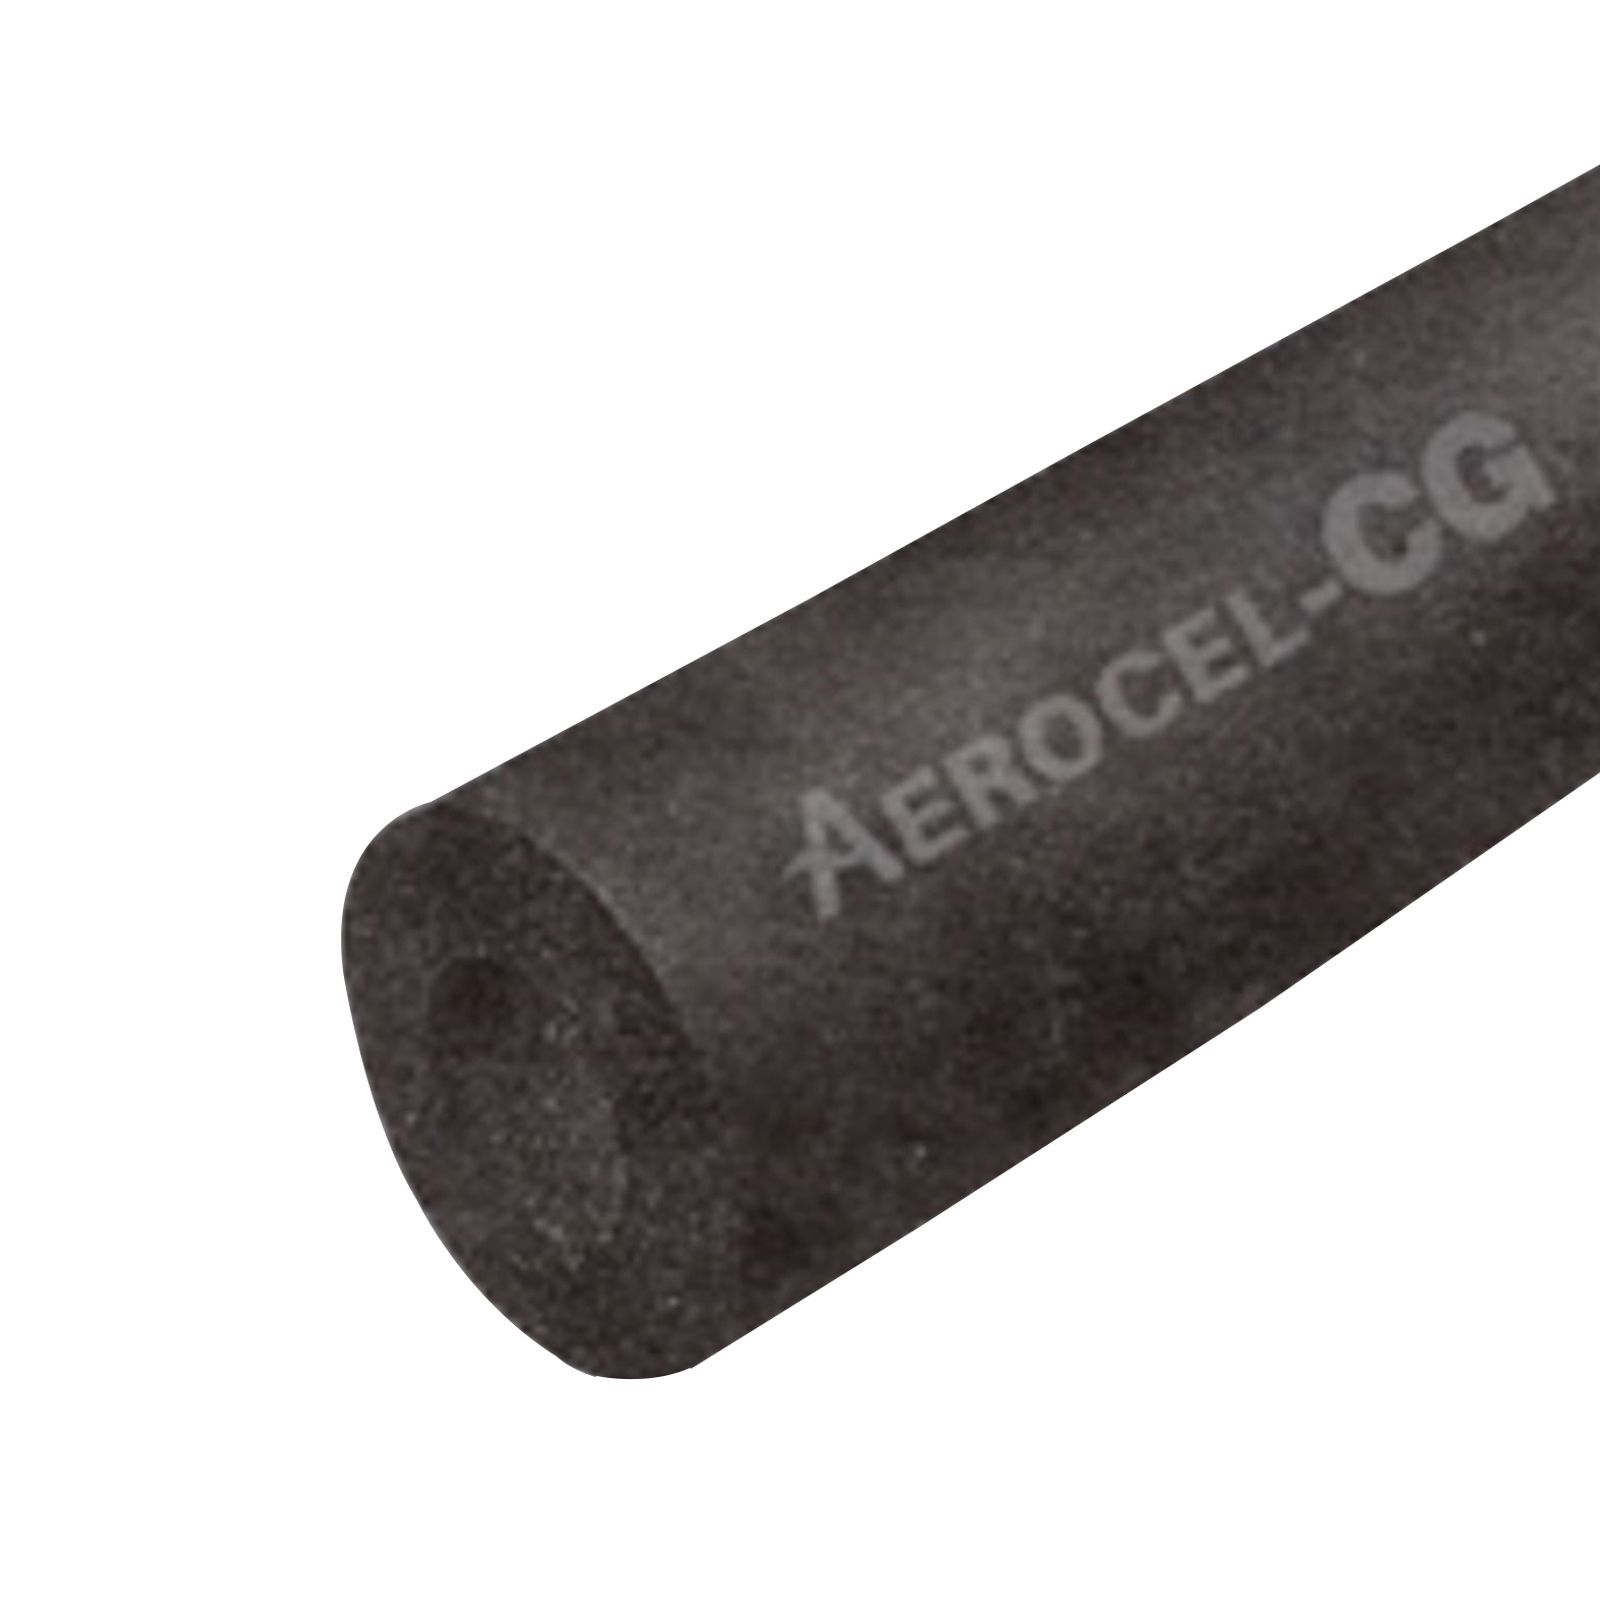 "Aeroflex CG7838 - Elastomeric Tubing Insulation, 7/8"" ID X 3/8"" Wall Thickness, Fits 7/8"" OD Copper Tubing, Residential Only"